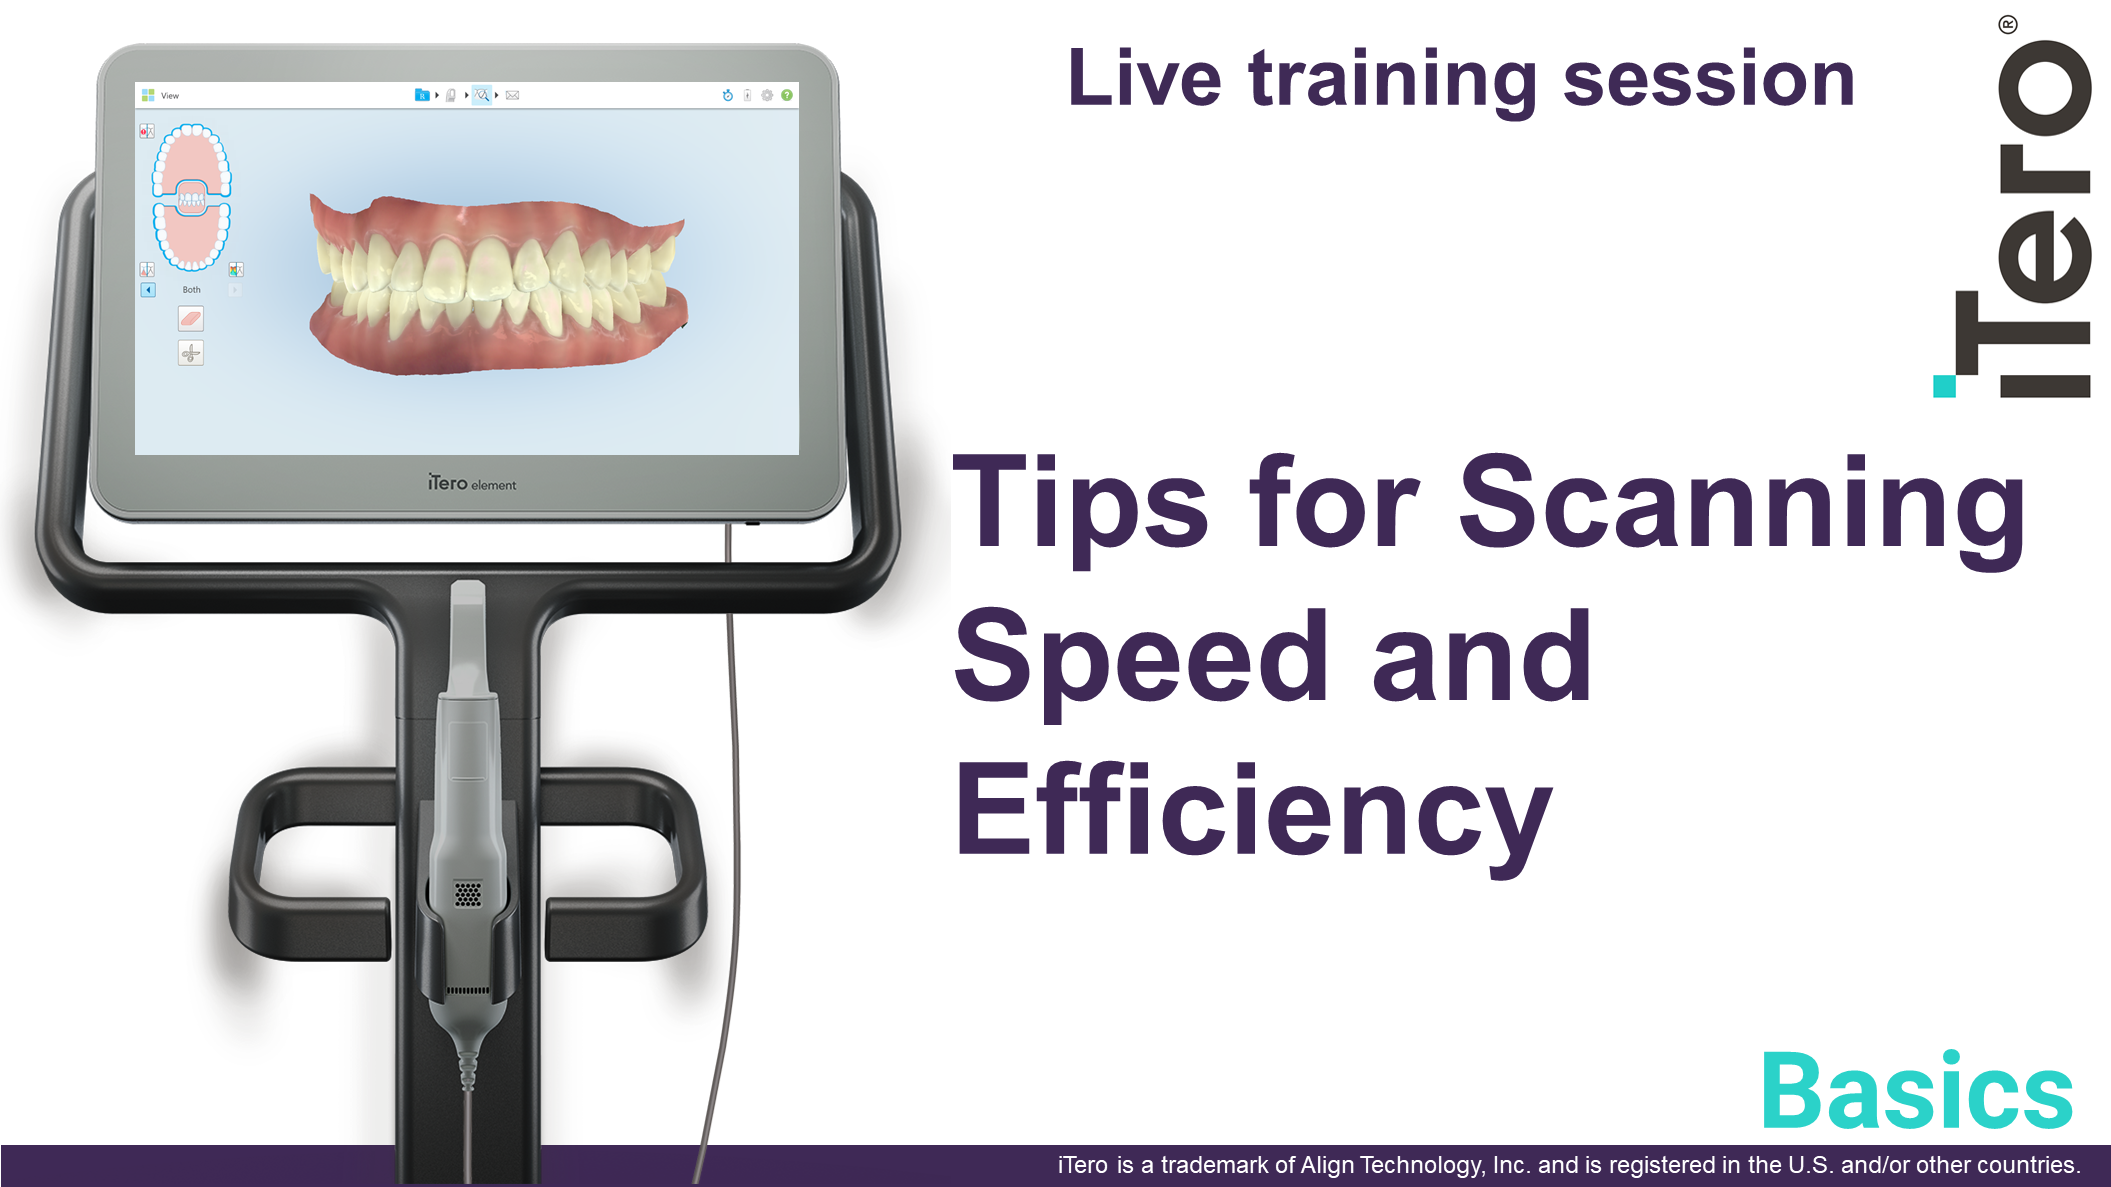 Tips for Scanning Speed and Efficiency 12pmEDT(11amCT/10amMT/9amPT)